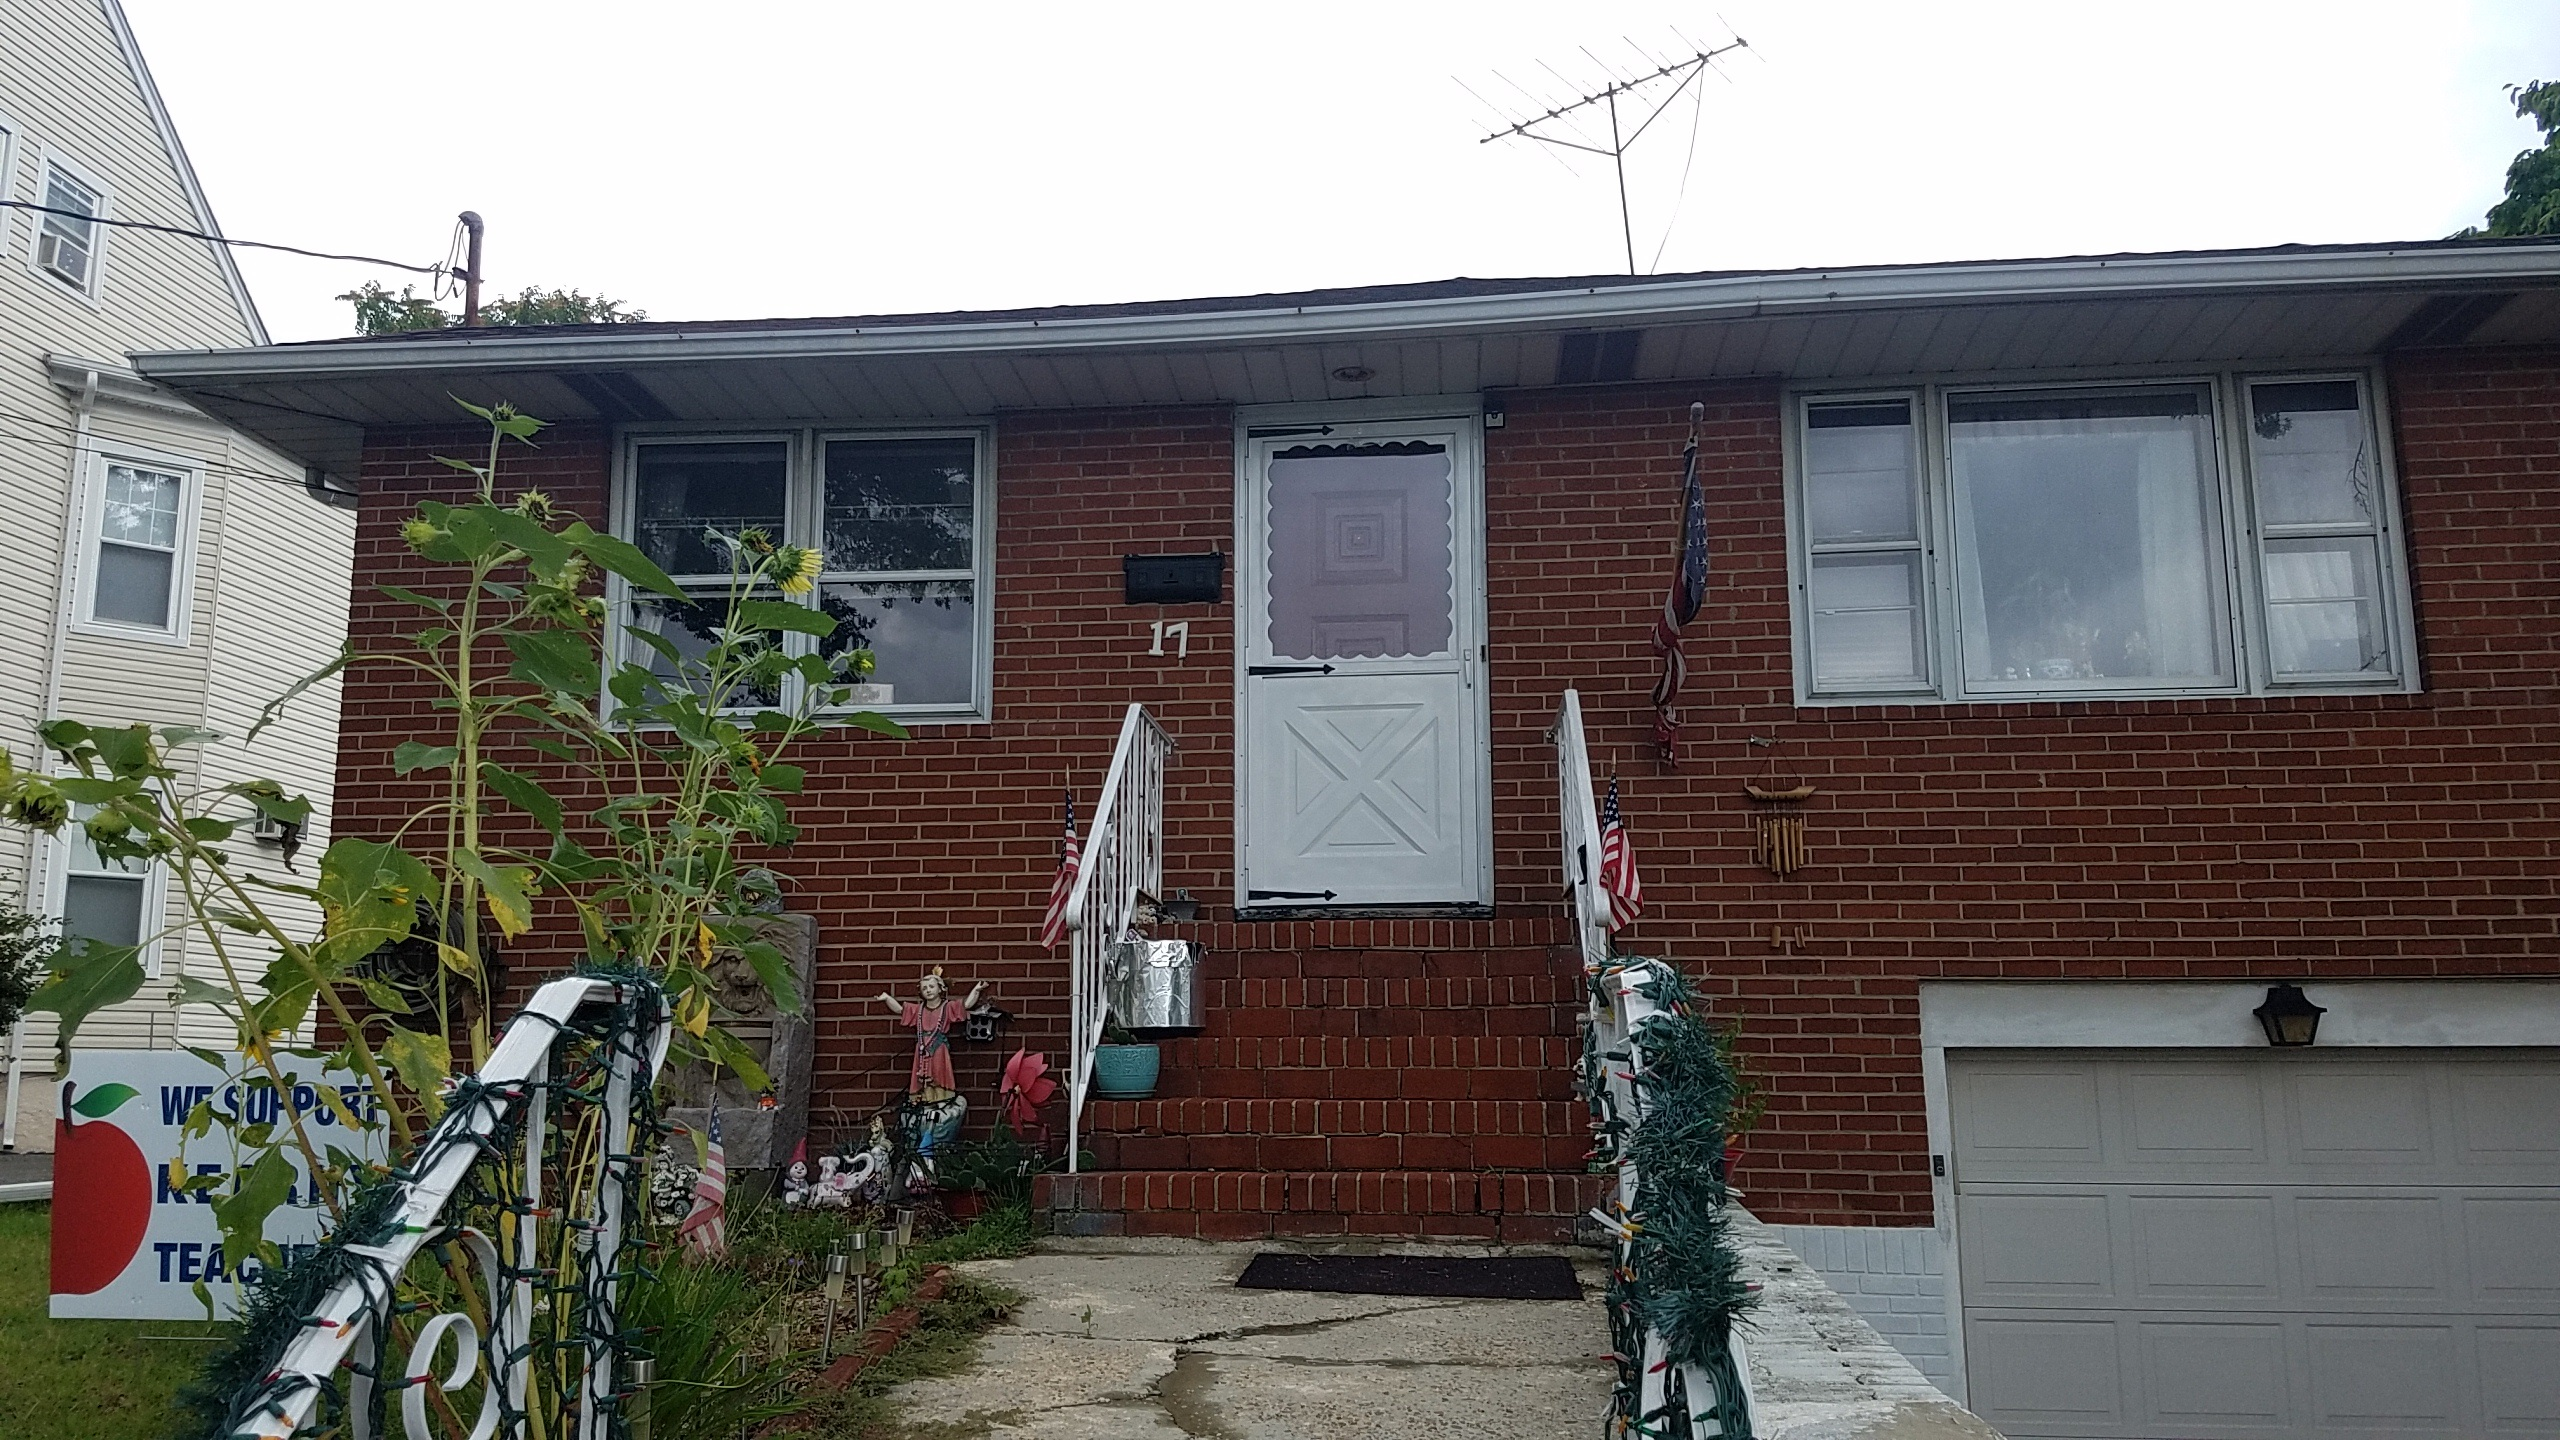 JUST REDUCED!! – 17 STUYVESANT AVE, KEARNY, NJ 07032 – $270,000